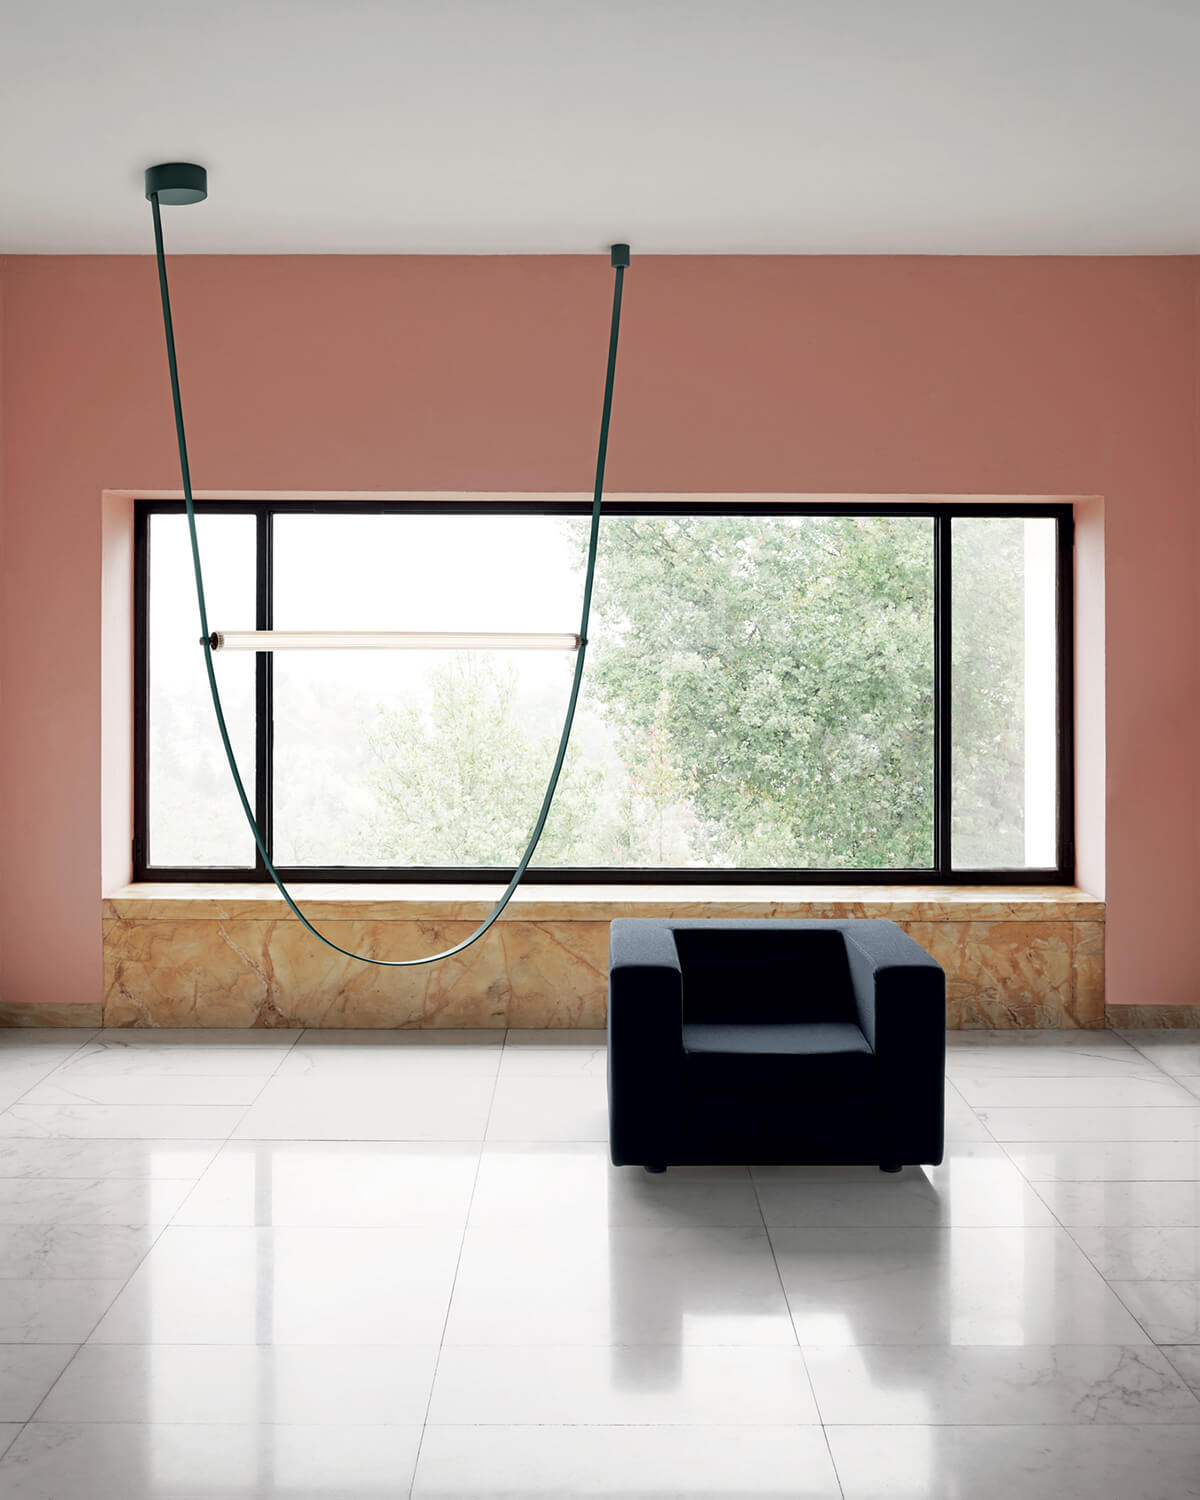 Green Wireline light hung in front of a pink wall, next to a black armchair